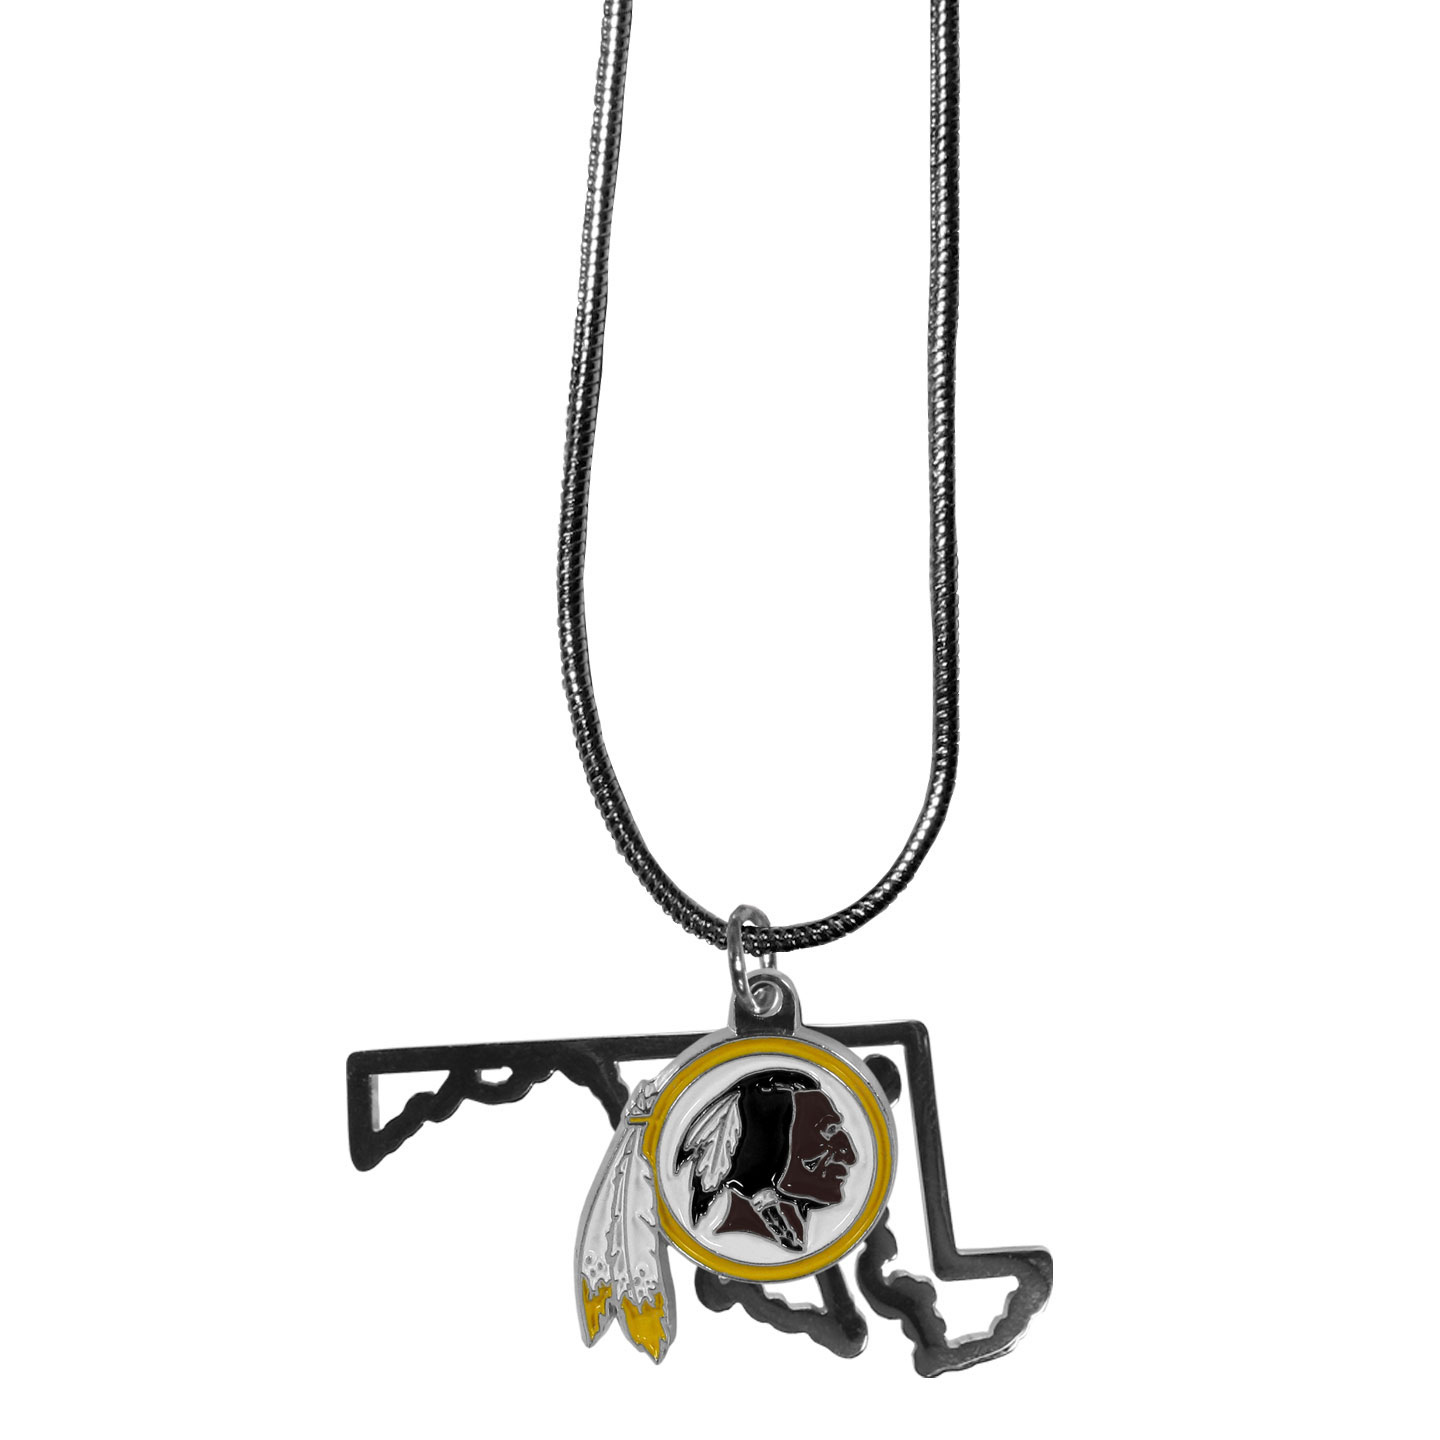 Washington Redskins State Charm Necklace - Get in on the trend! State themes are a trend that just keeps getting more popular and these necklaces take the state style and give it a sporty twist with a Washington Redskins added to the state outline charm. The come on a snake chain that is 22 inches long.